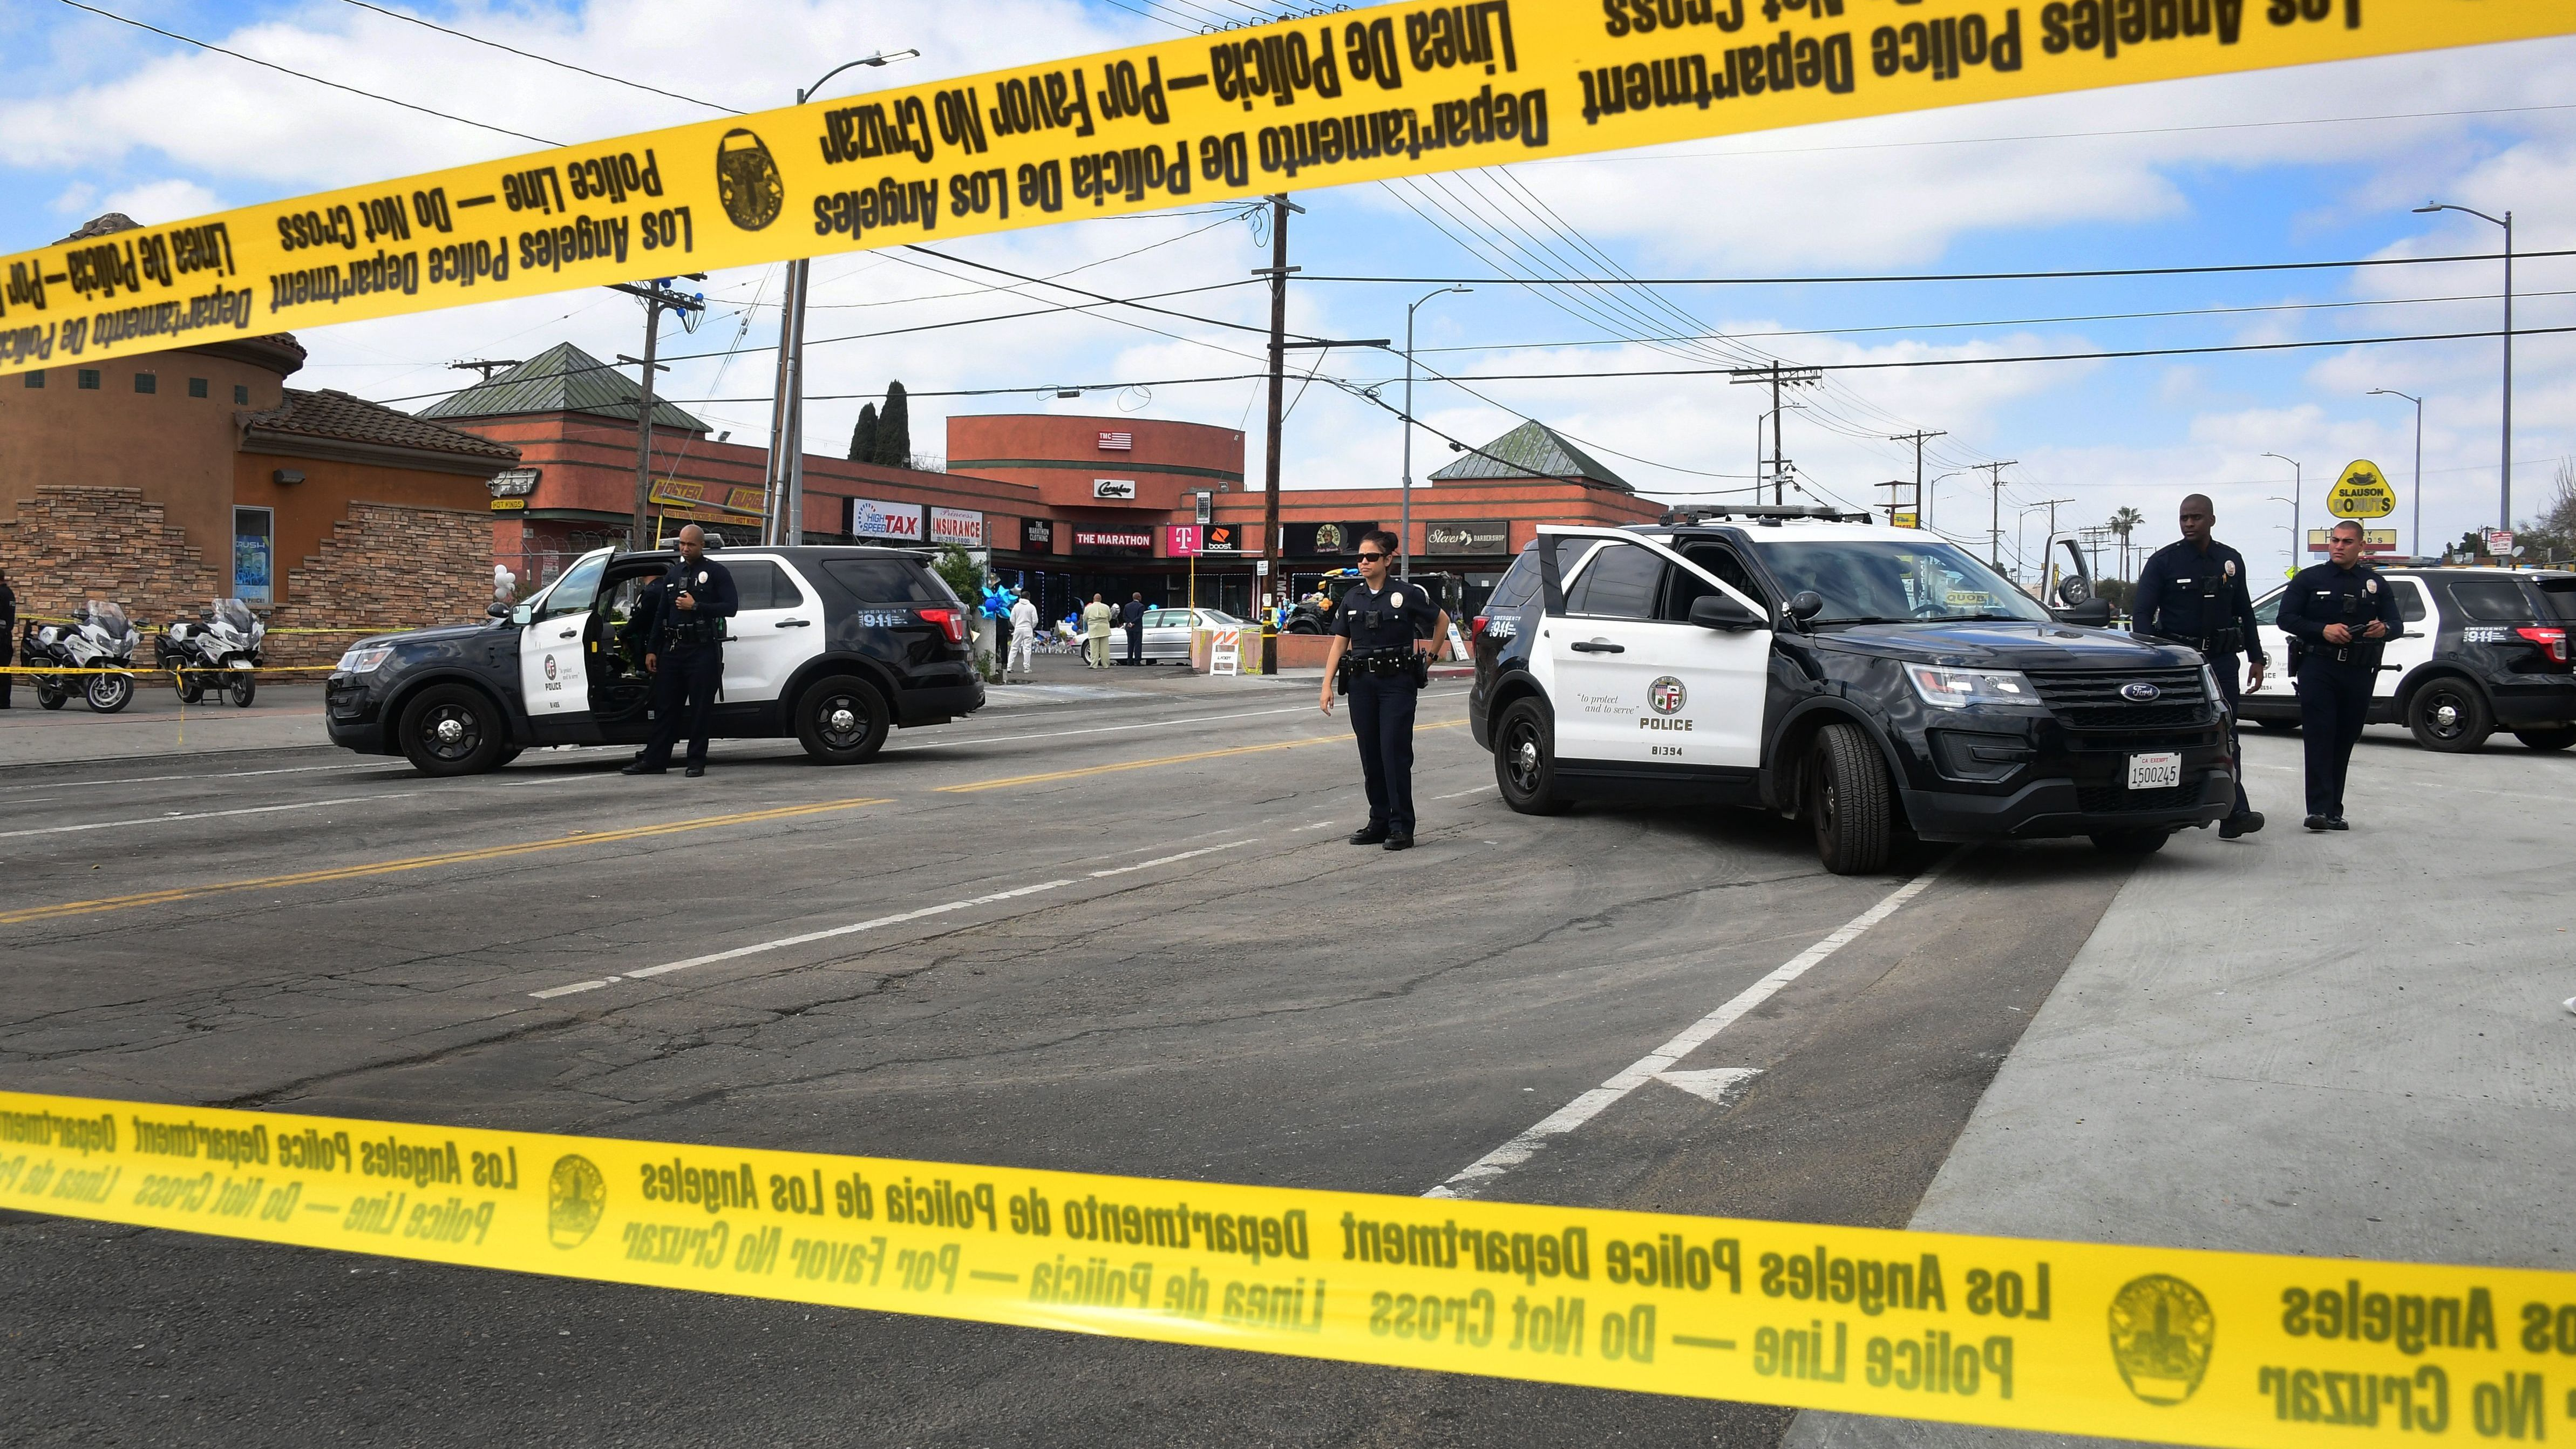 Police monitor a roadblock in front of the late Nipsey Hussle's The Marathon Store in Los Angeles on Tuesday. Authorities announced the arrest of the shooting suspect in the rapper's death.